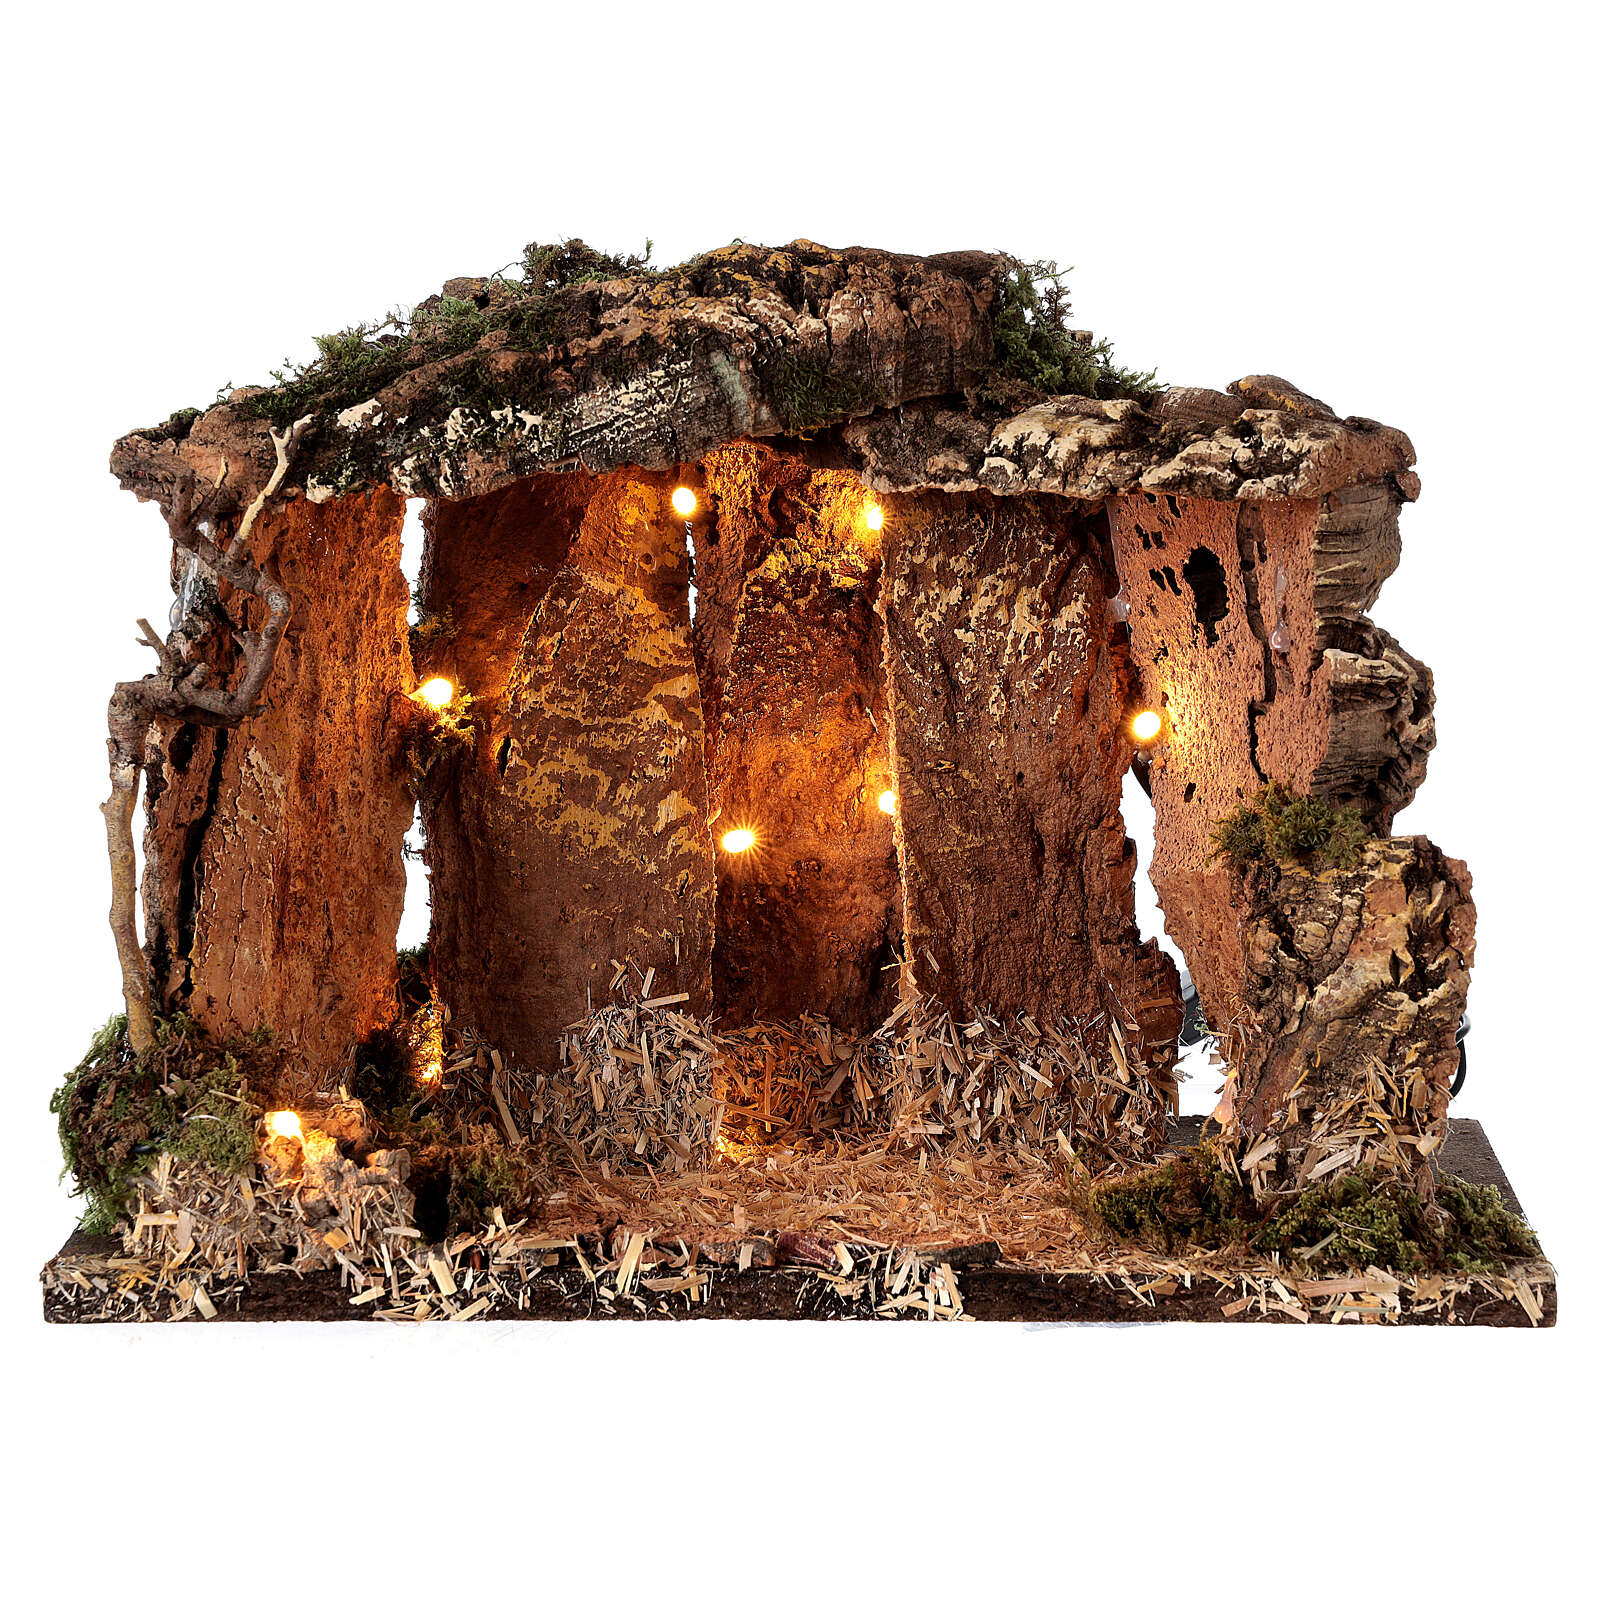 Wooden nativity stable lighted 25x30x20 cm 16 cm figurines 4